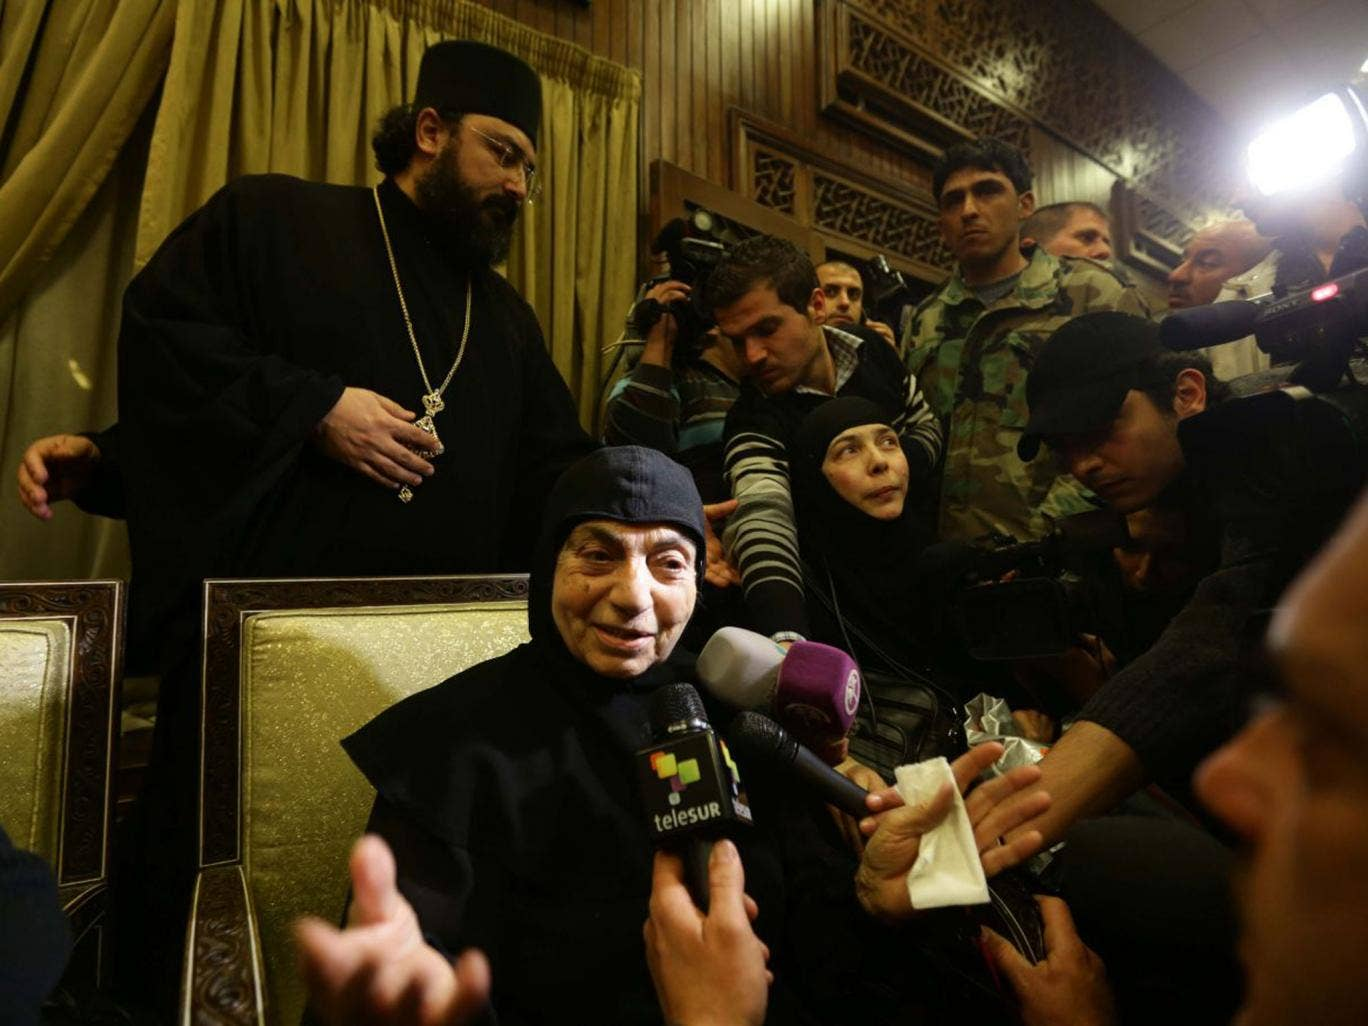 Kidnapped nuns talk to the media at Jdeidet Yabus on the Syrian side of the border with Lebanon after an arduous nine-hour journey yesterday